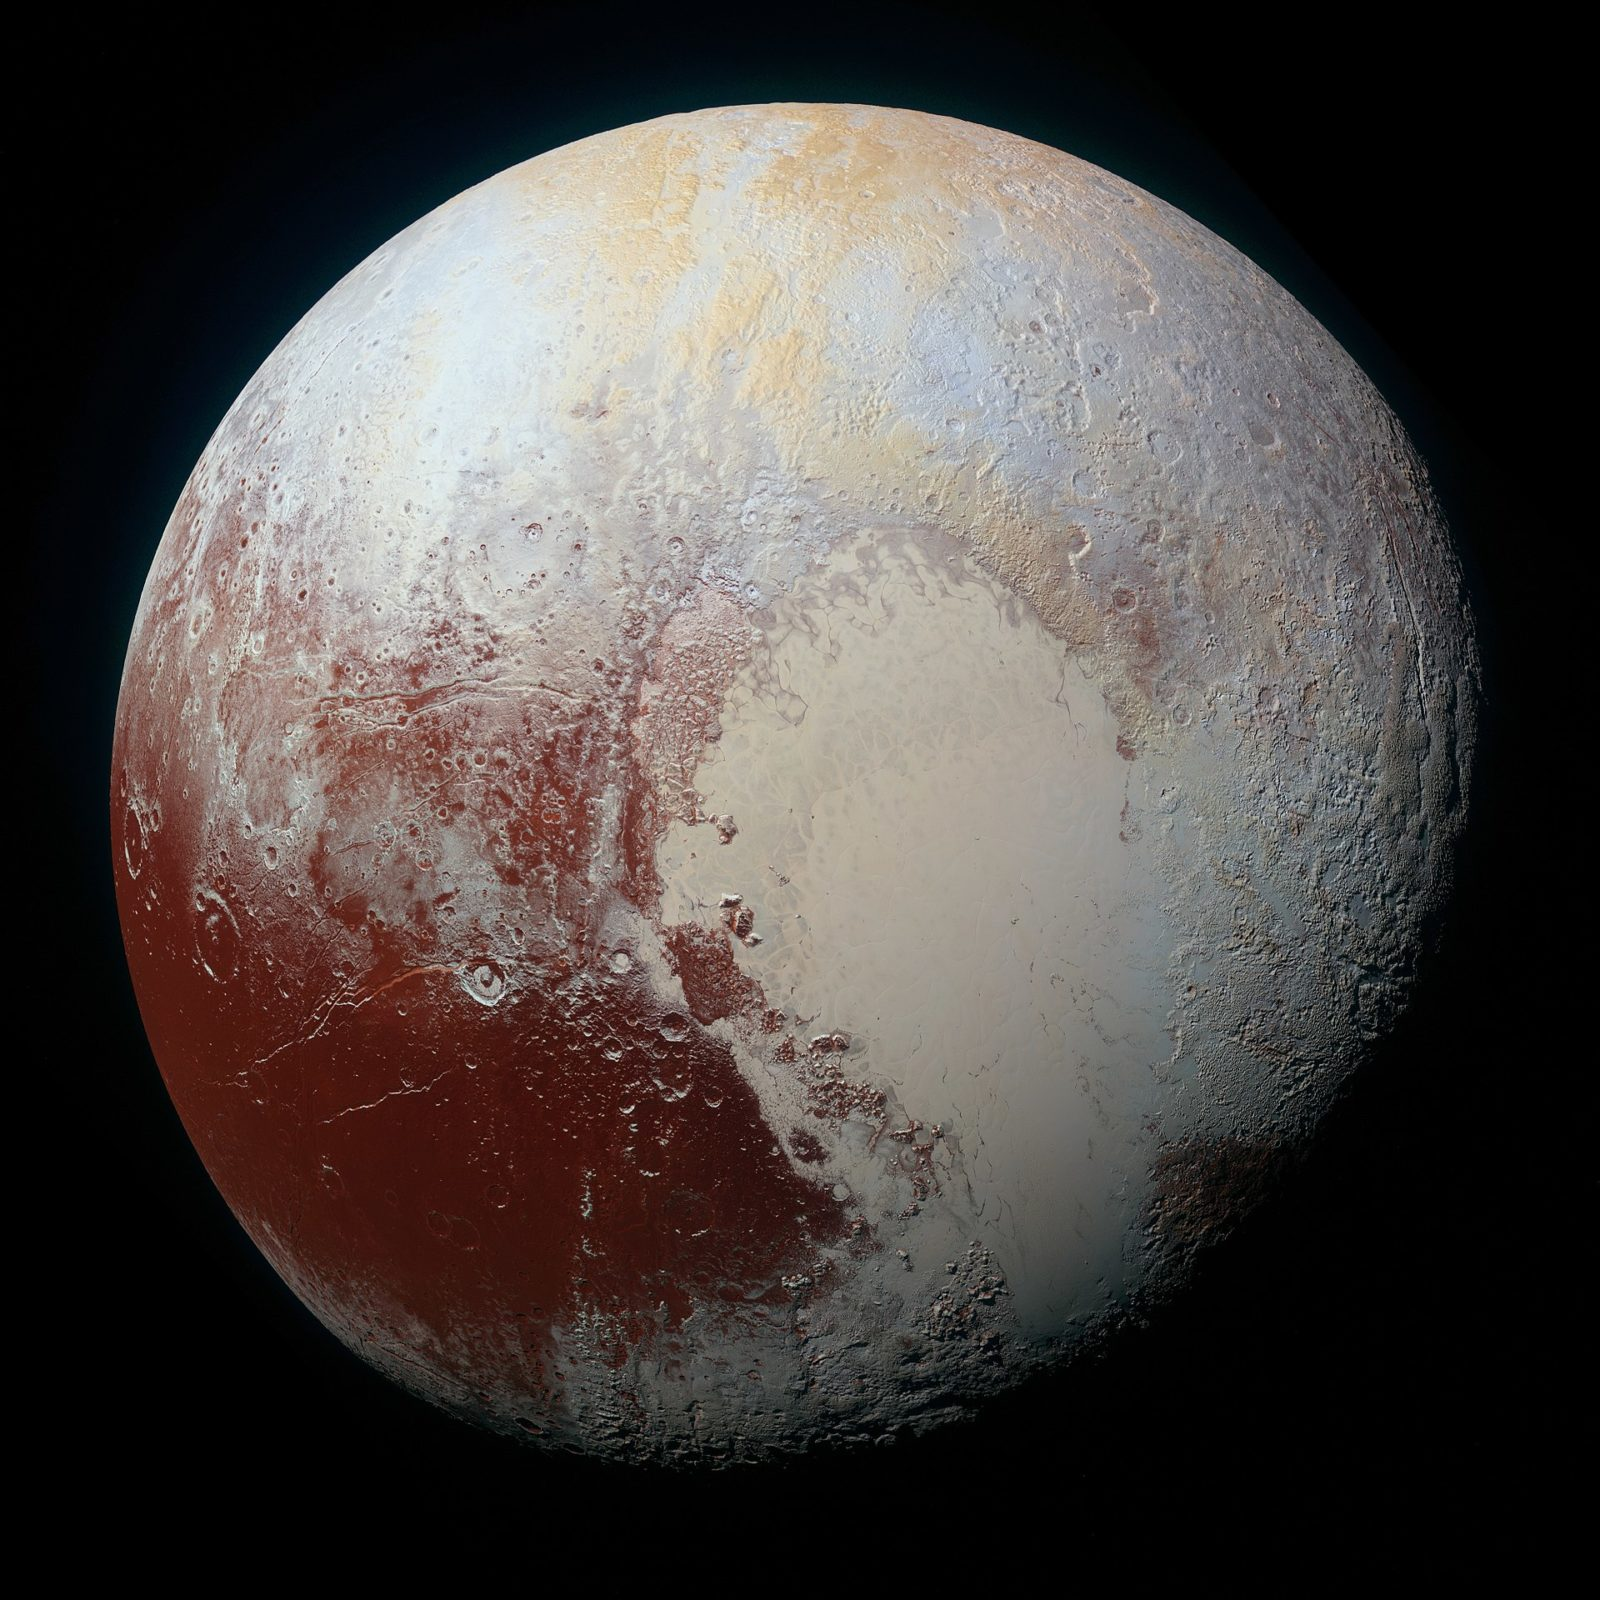 PLUTO - NEW HORIZONS - July 14, 2015